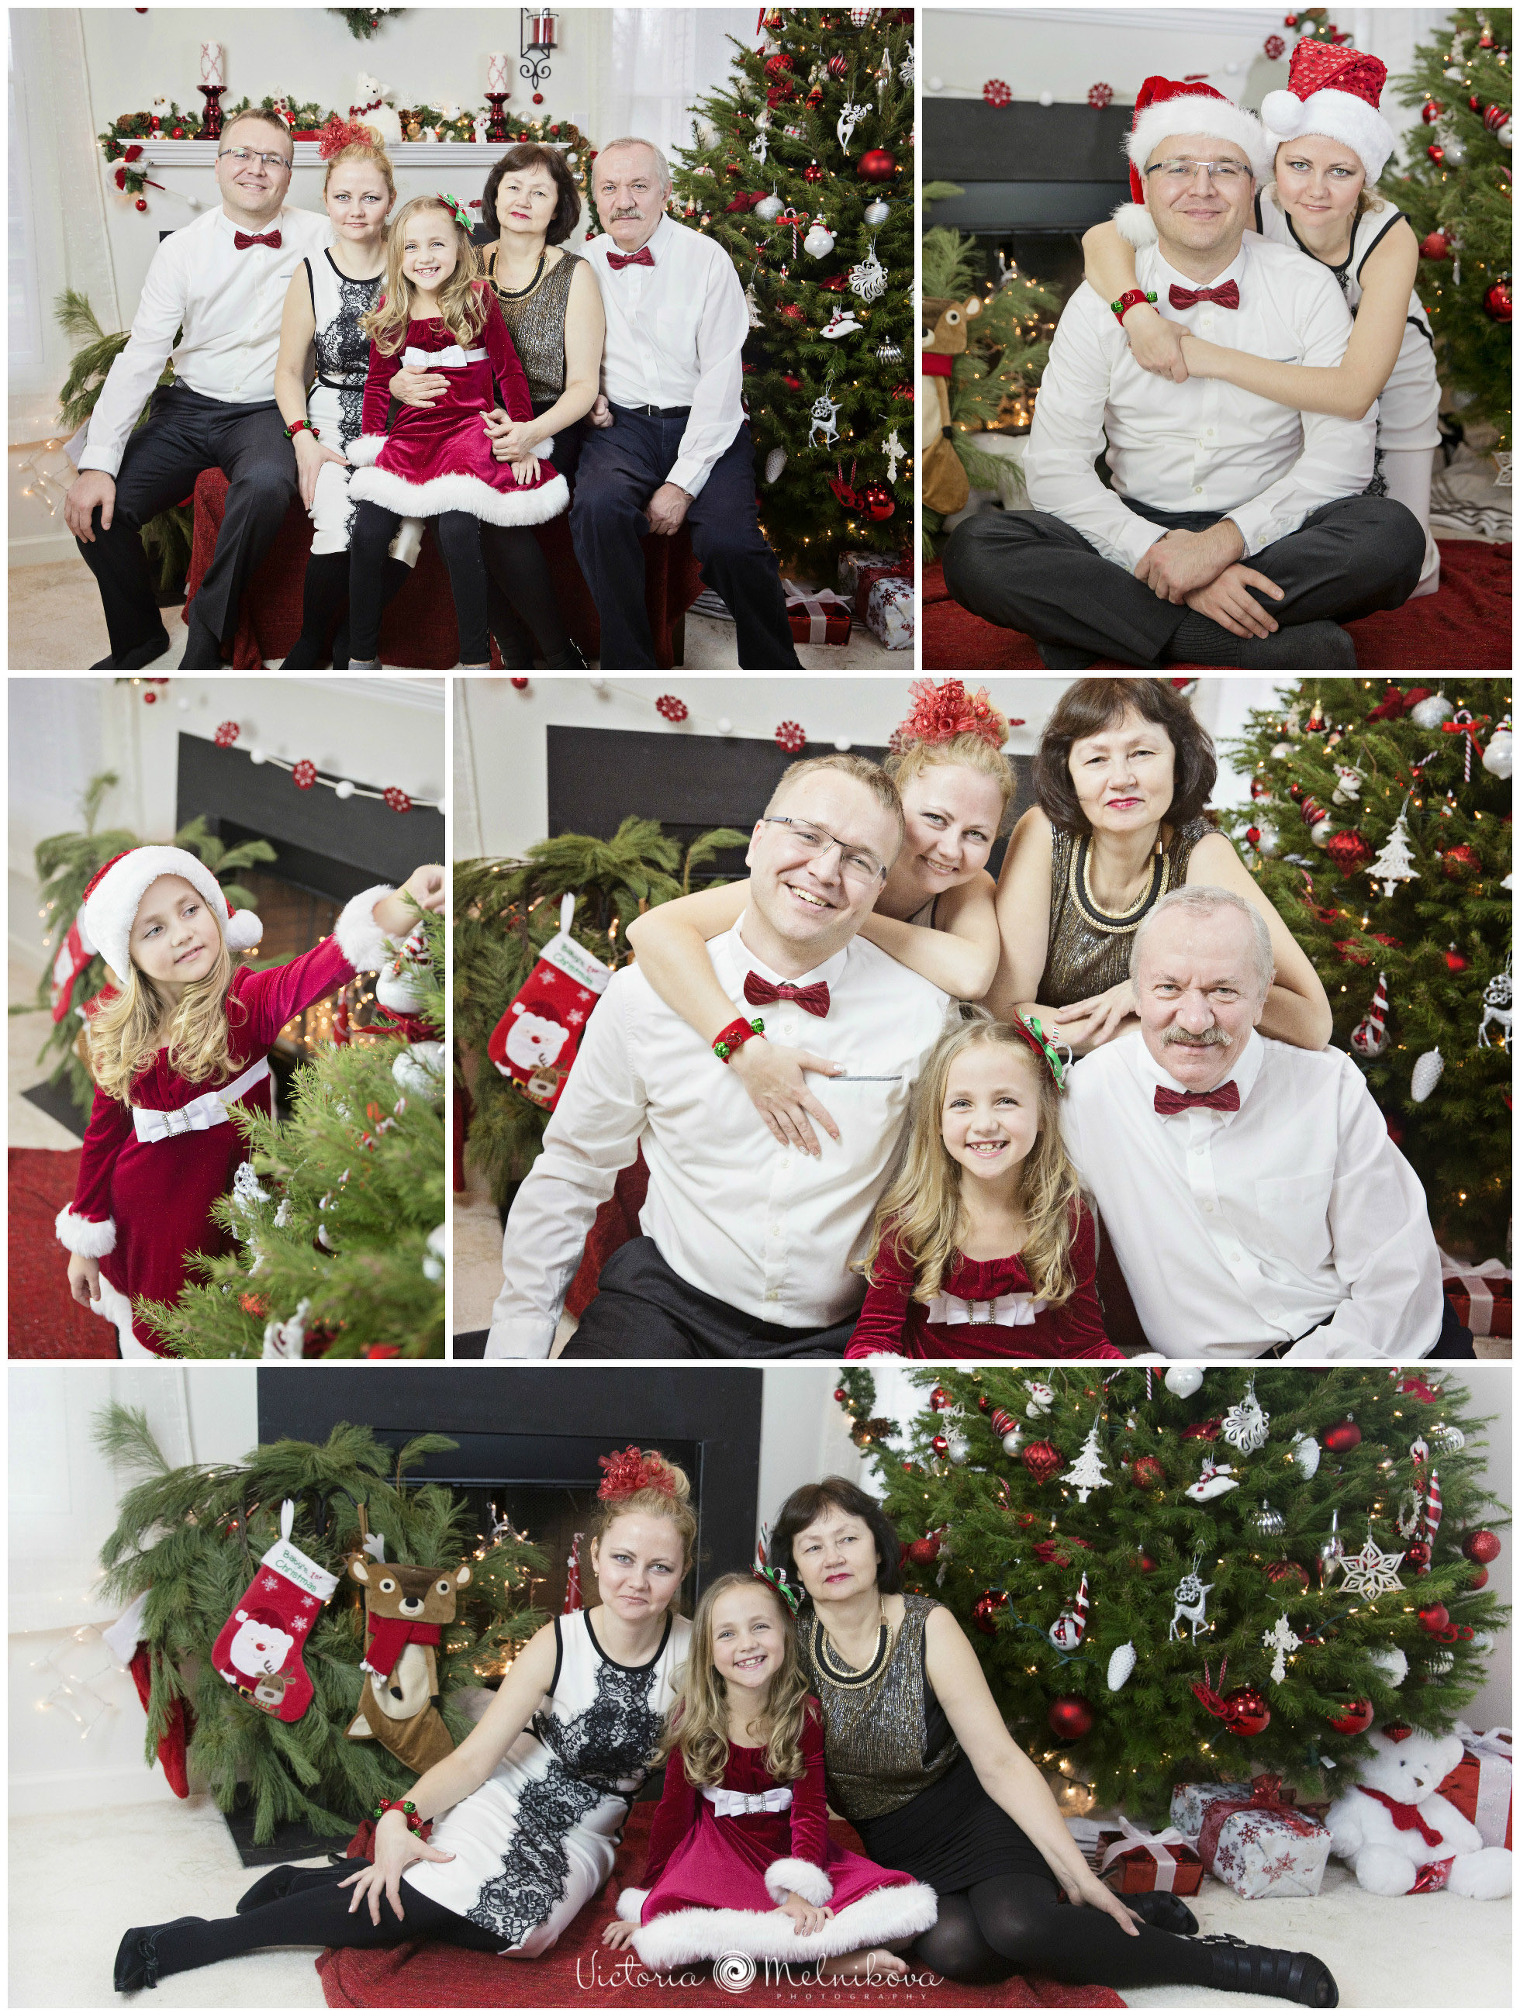 Christmas photo ideas for family